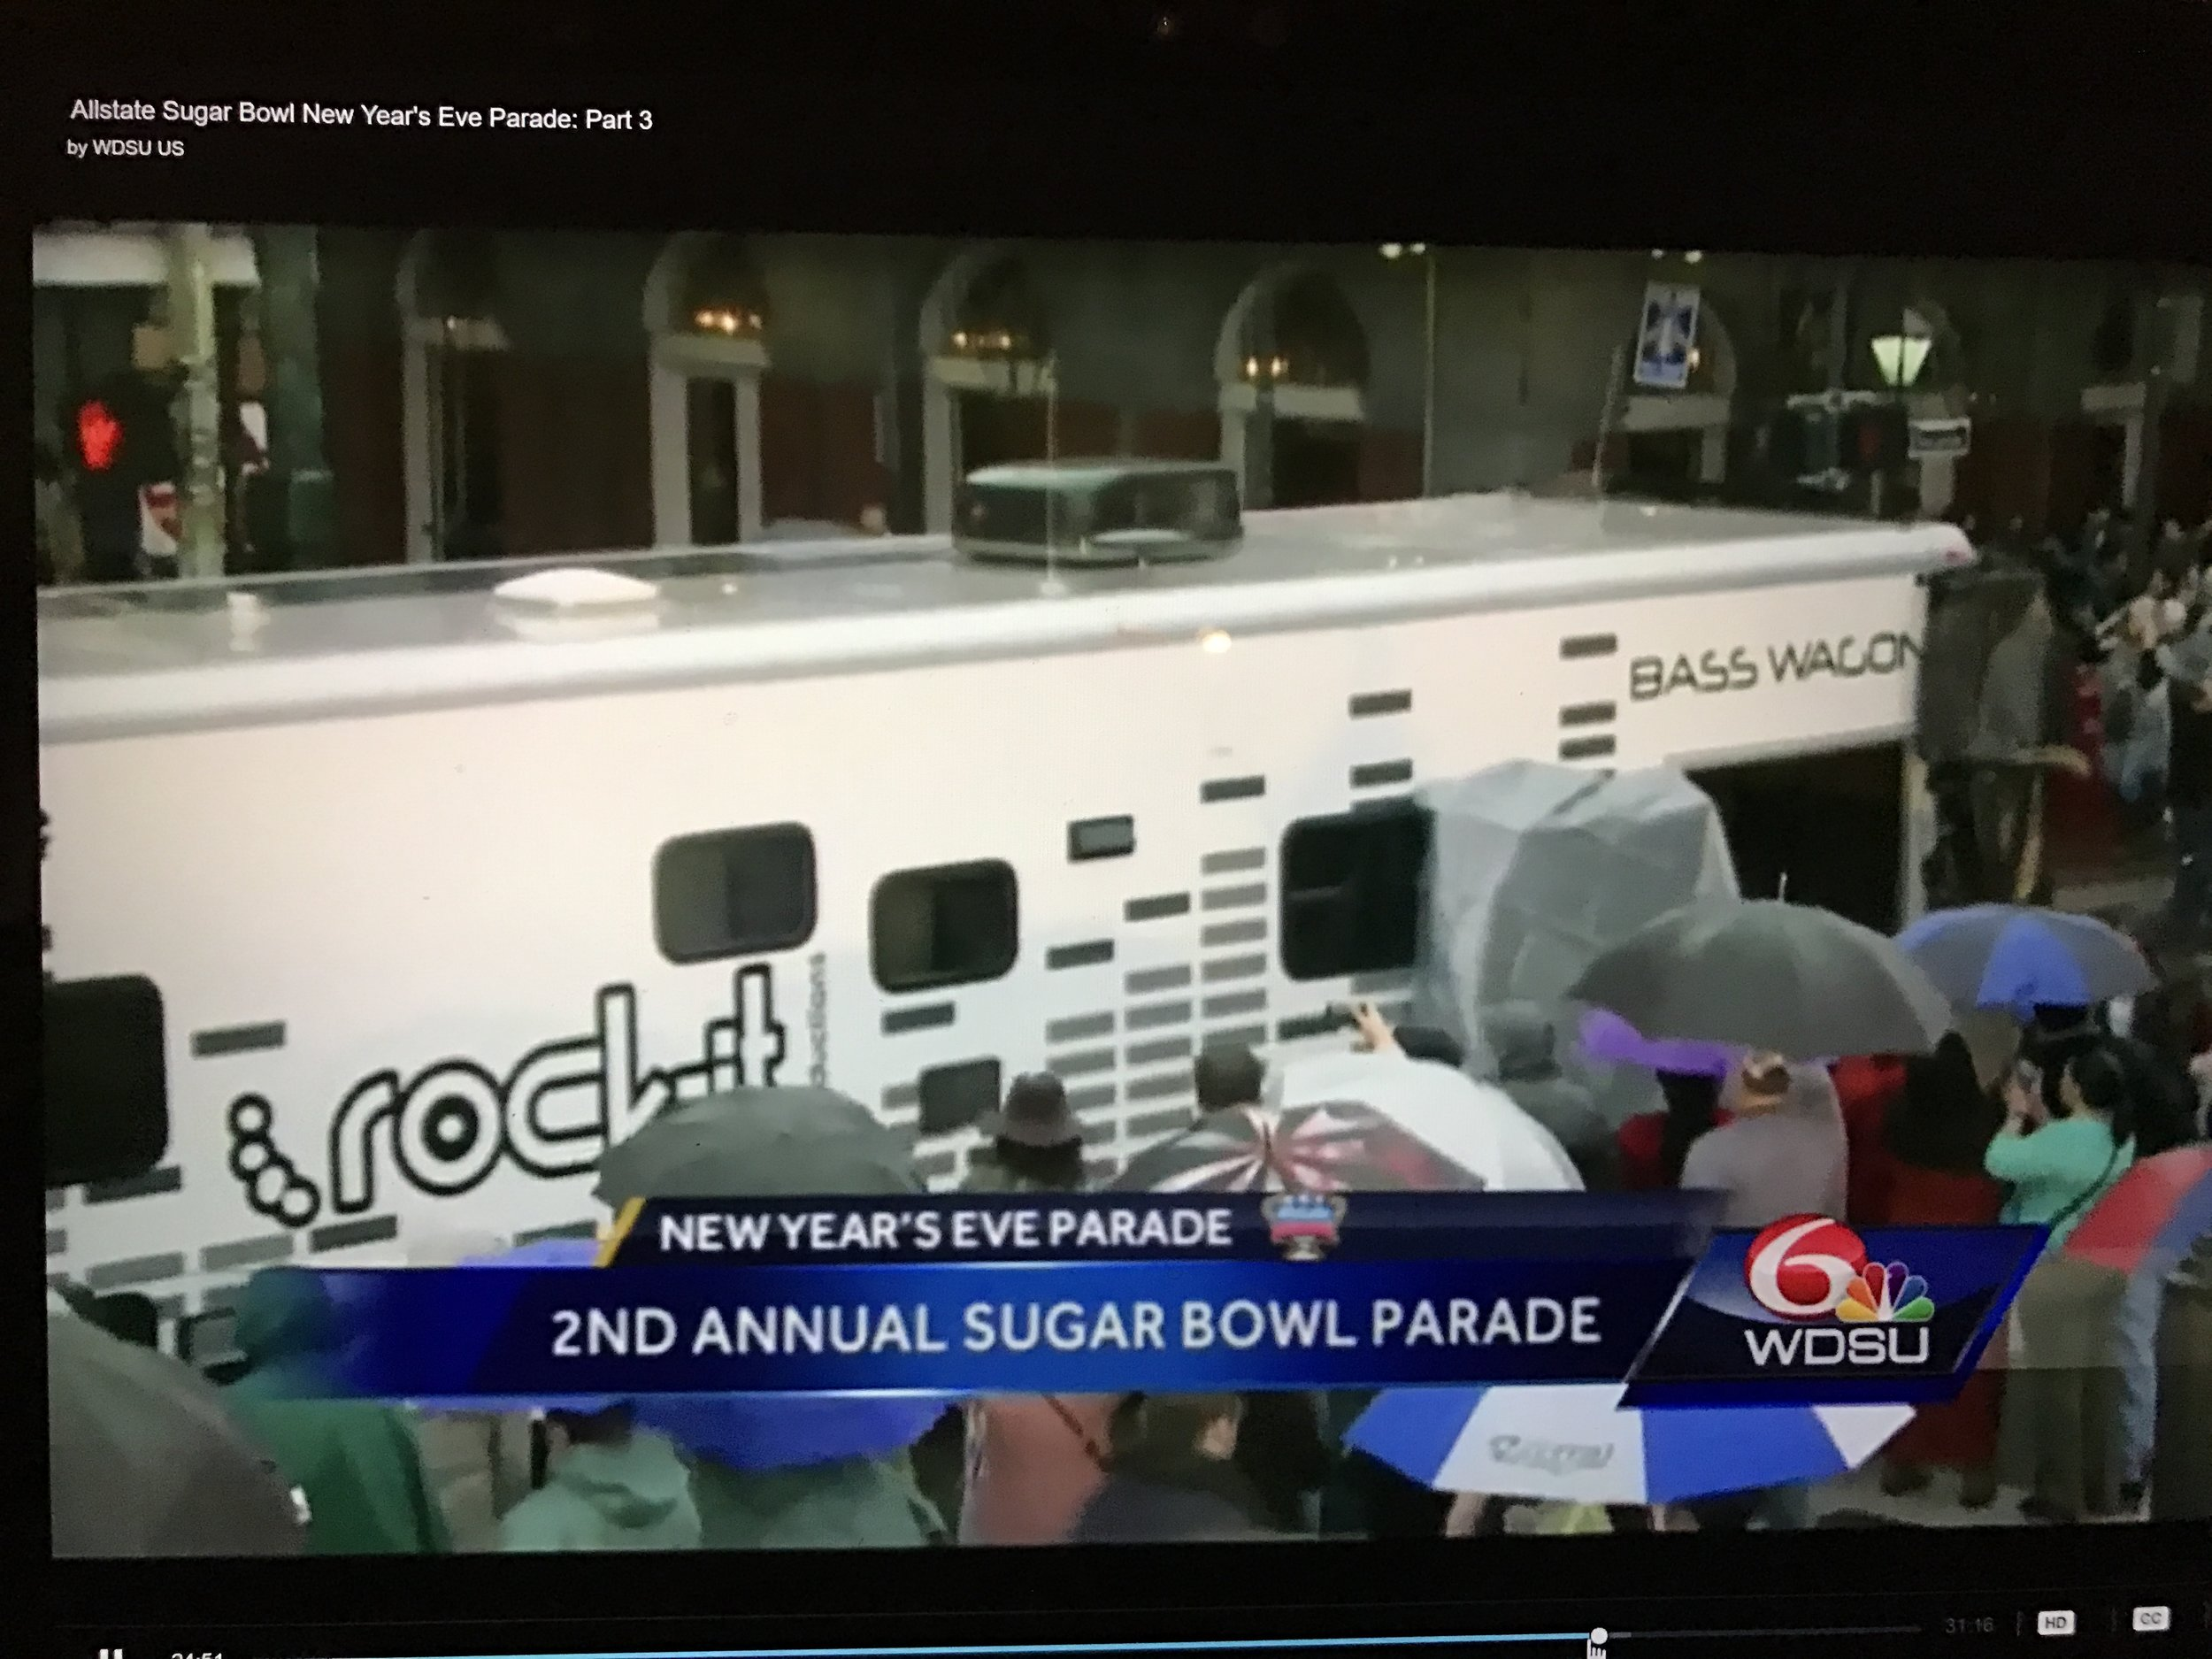 Bass Wagon rolled in The Allstate Sugar Bowl Parade, New Orleans